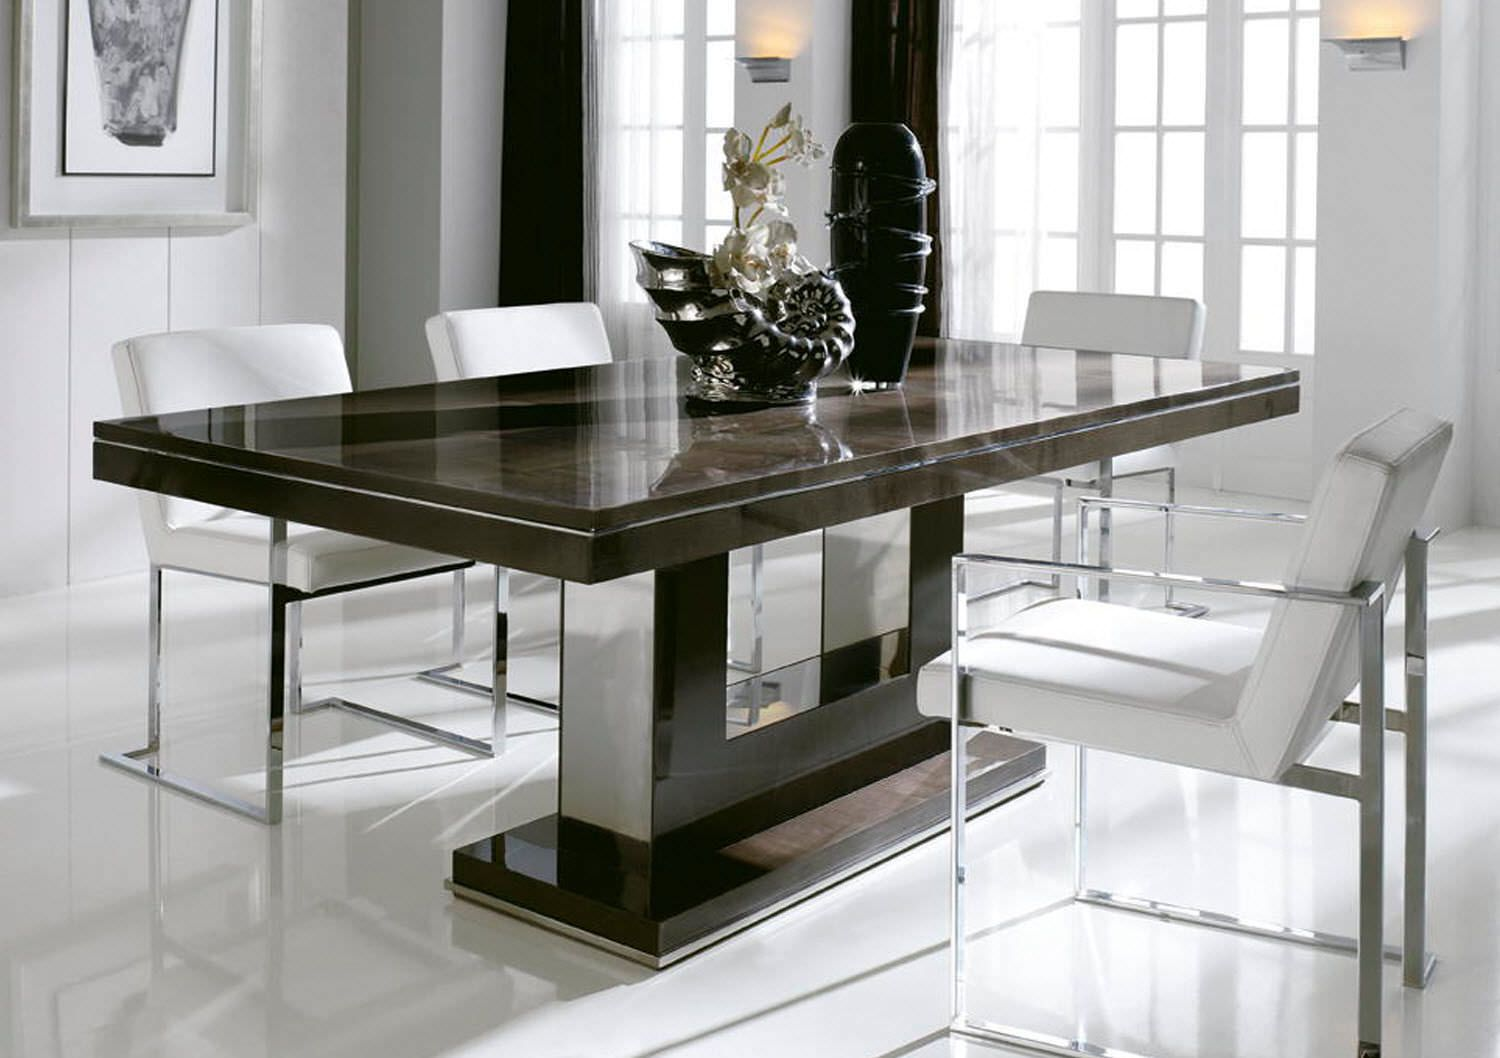 marble top dining table set popular in small home decoration ideas  - black kitchen tables extendable dining table dining tables dining rooms contemporarydining table modern dining sets marble tables marble top dining